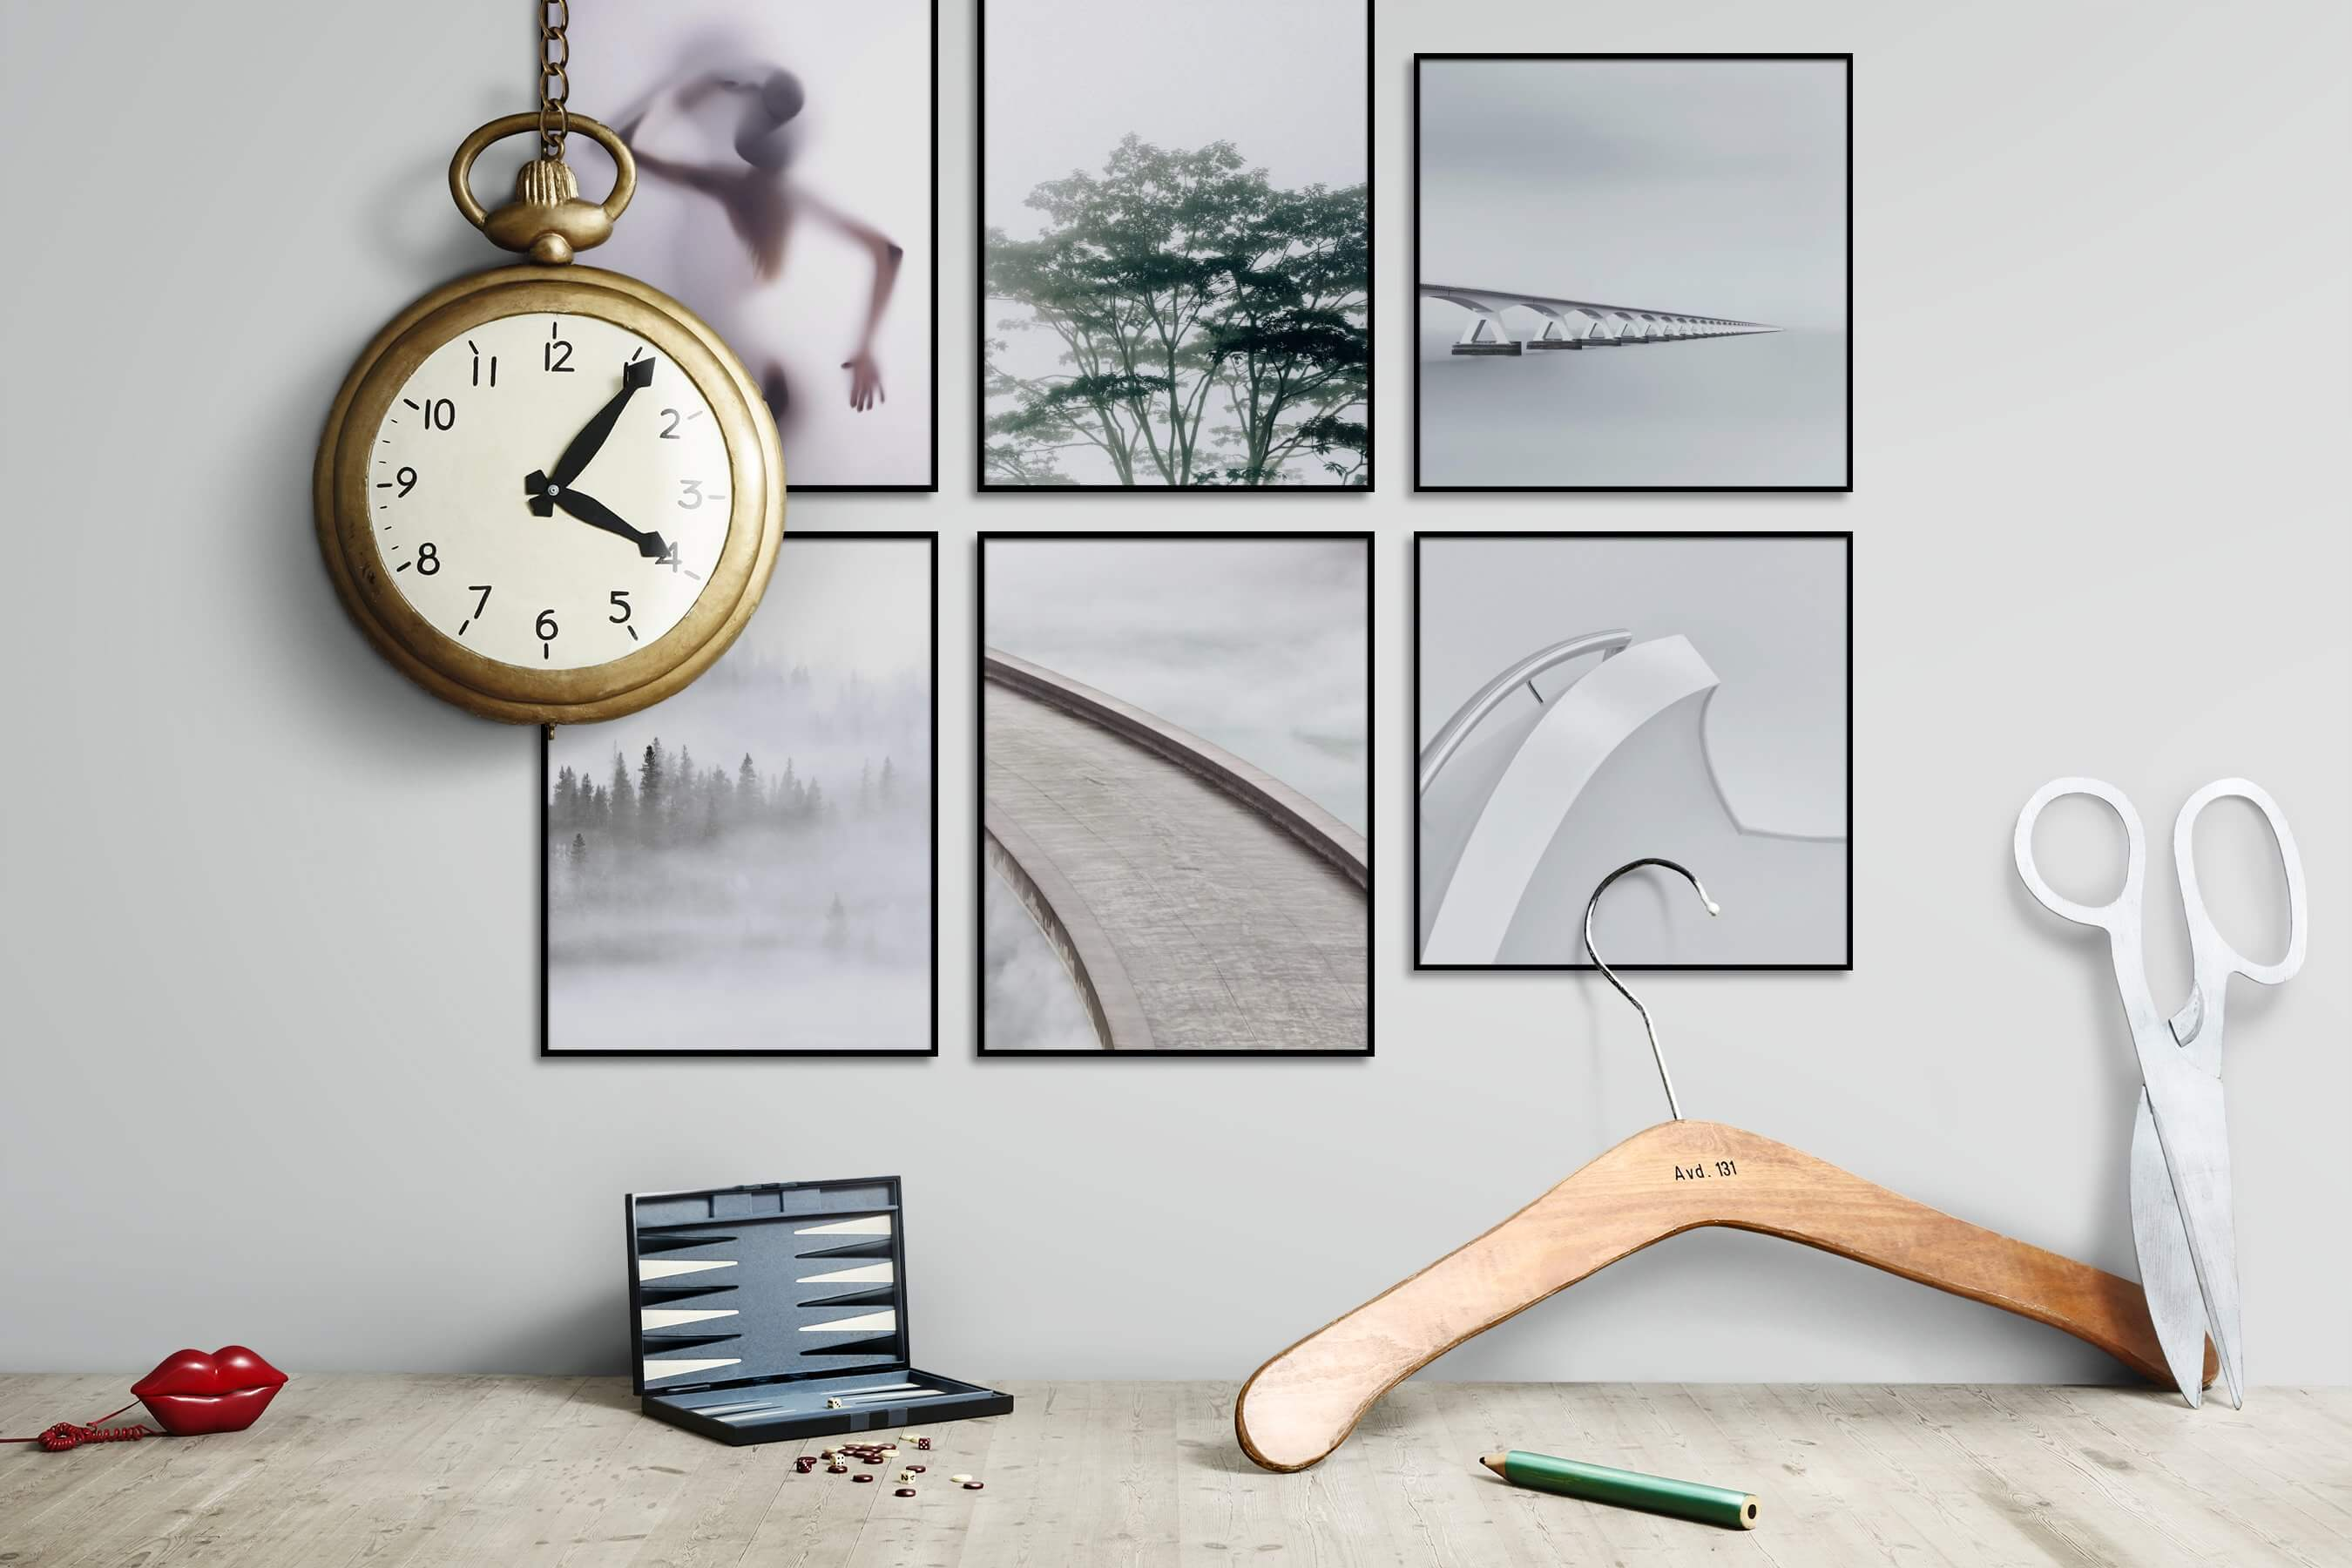 Gallery wall idea with six framed pictures arranged on a wall depicting Fashion & Beauty, For the Moderate, Nature, Mindfulness, Bright Tones, and For the Minimalist